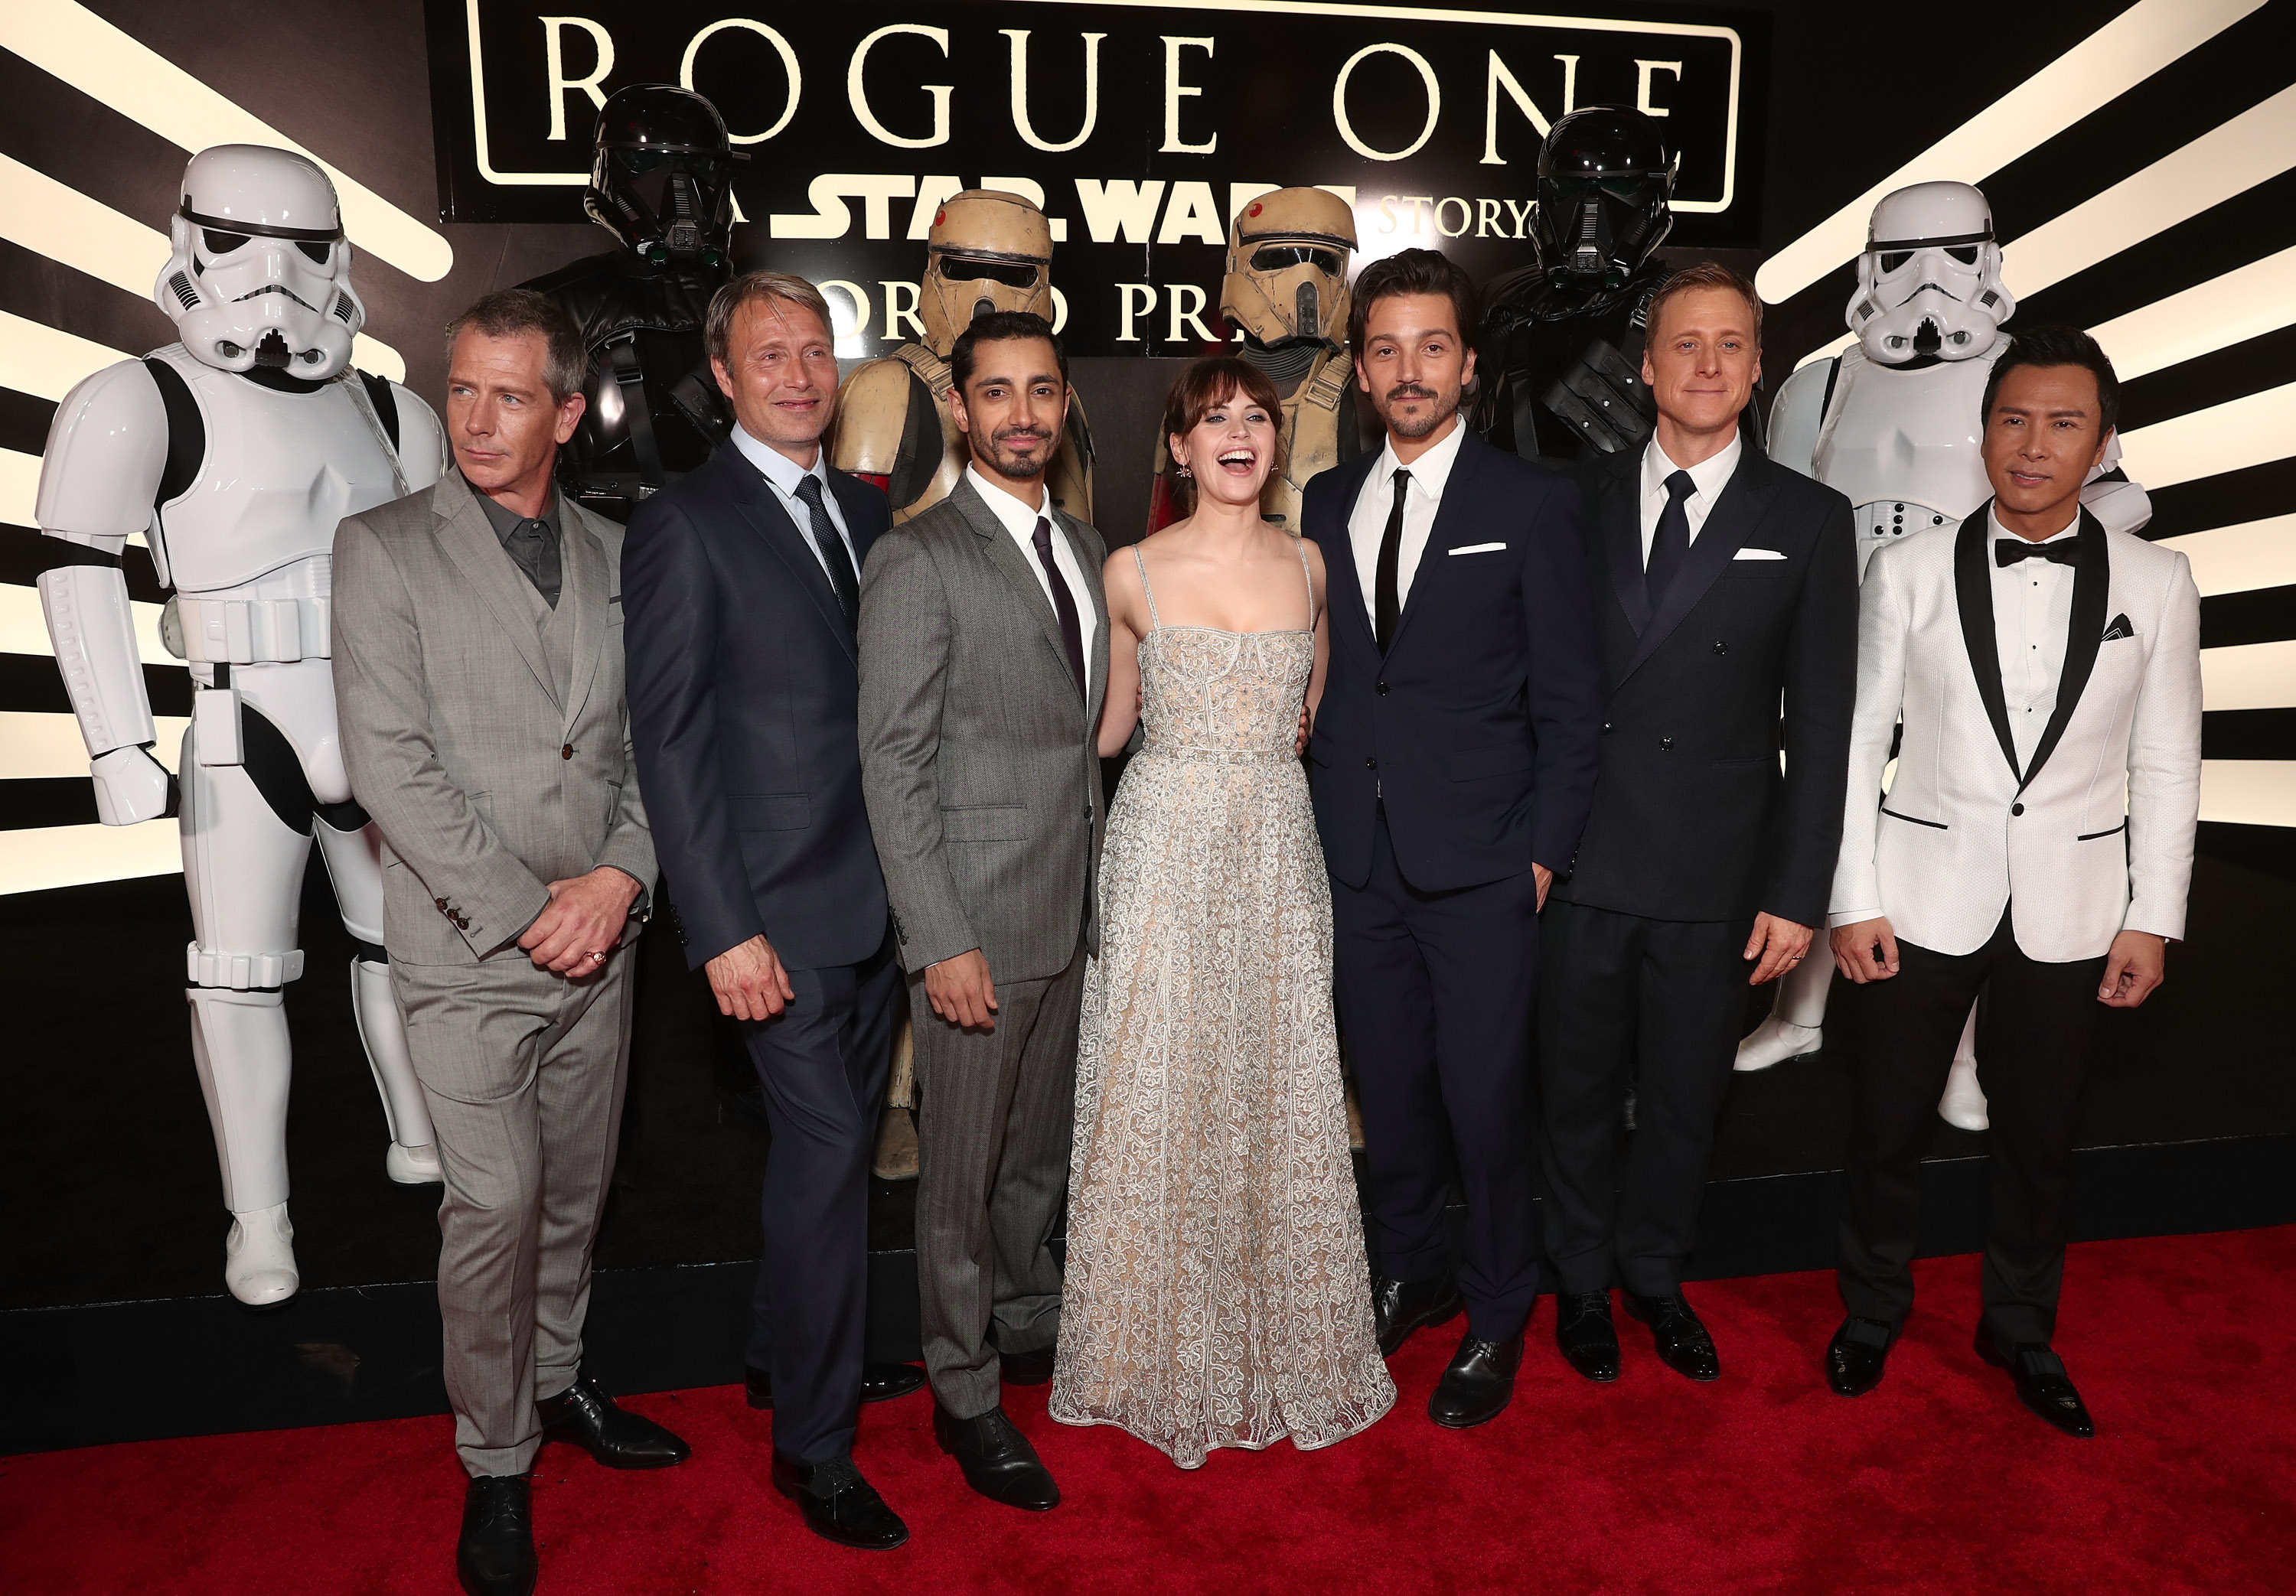 Cast members of 'Rouge One' attend the 'Star Wars' anthology movie's premiere at the Pantages Theatre, Hollywood, Calif., Dec. 10, 2016.